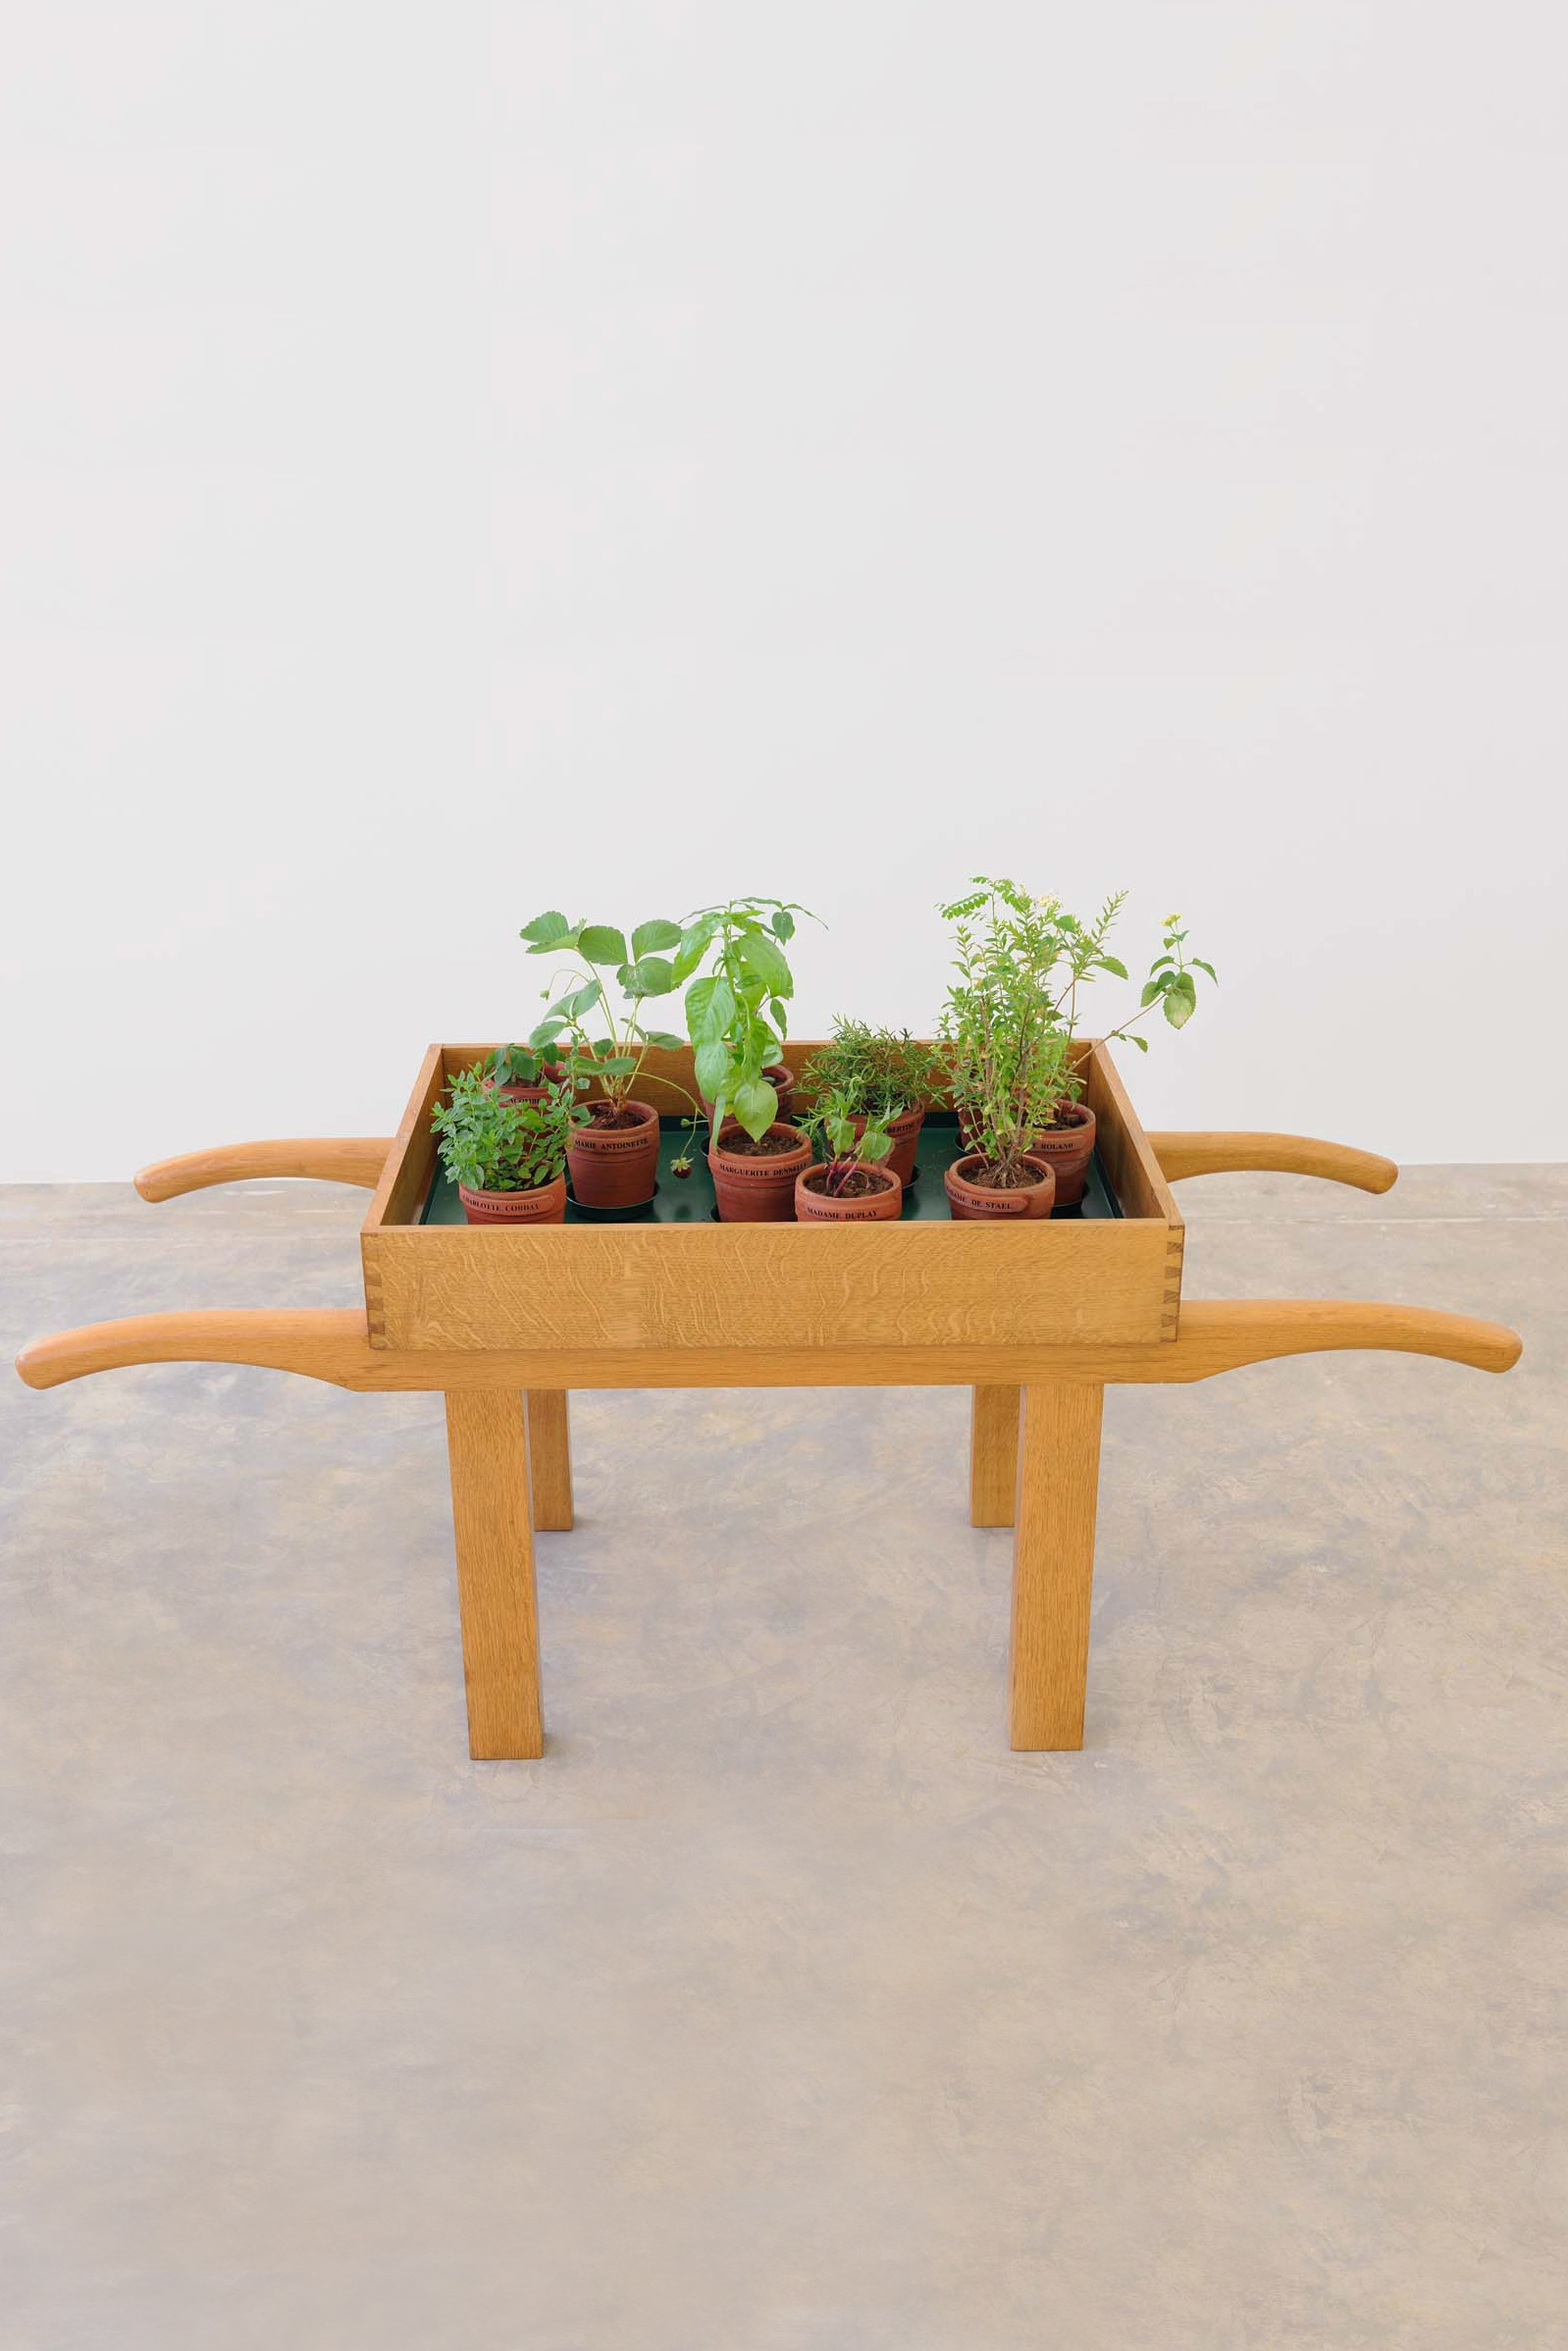 Women of the Revolution, 1993 with Keith Brookwell, Flower stand, 10 ceramic wildflower pots, 140 x 150.5 x 60 cm, Unique